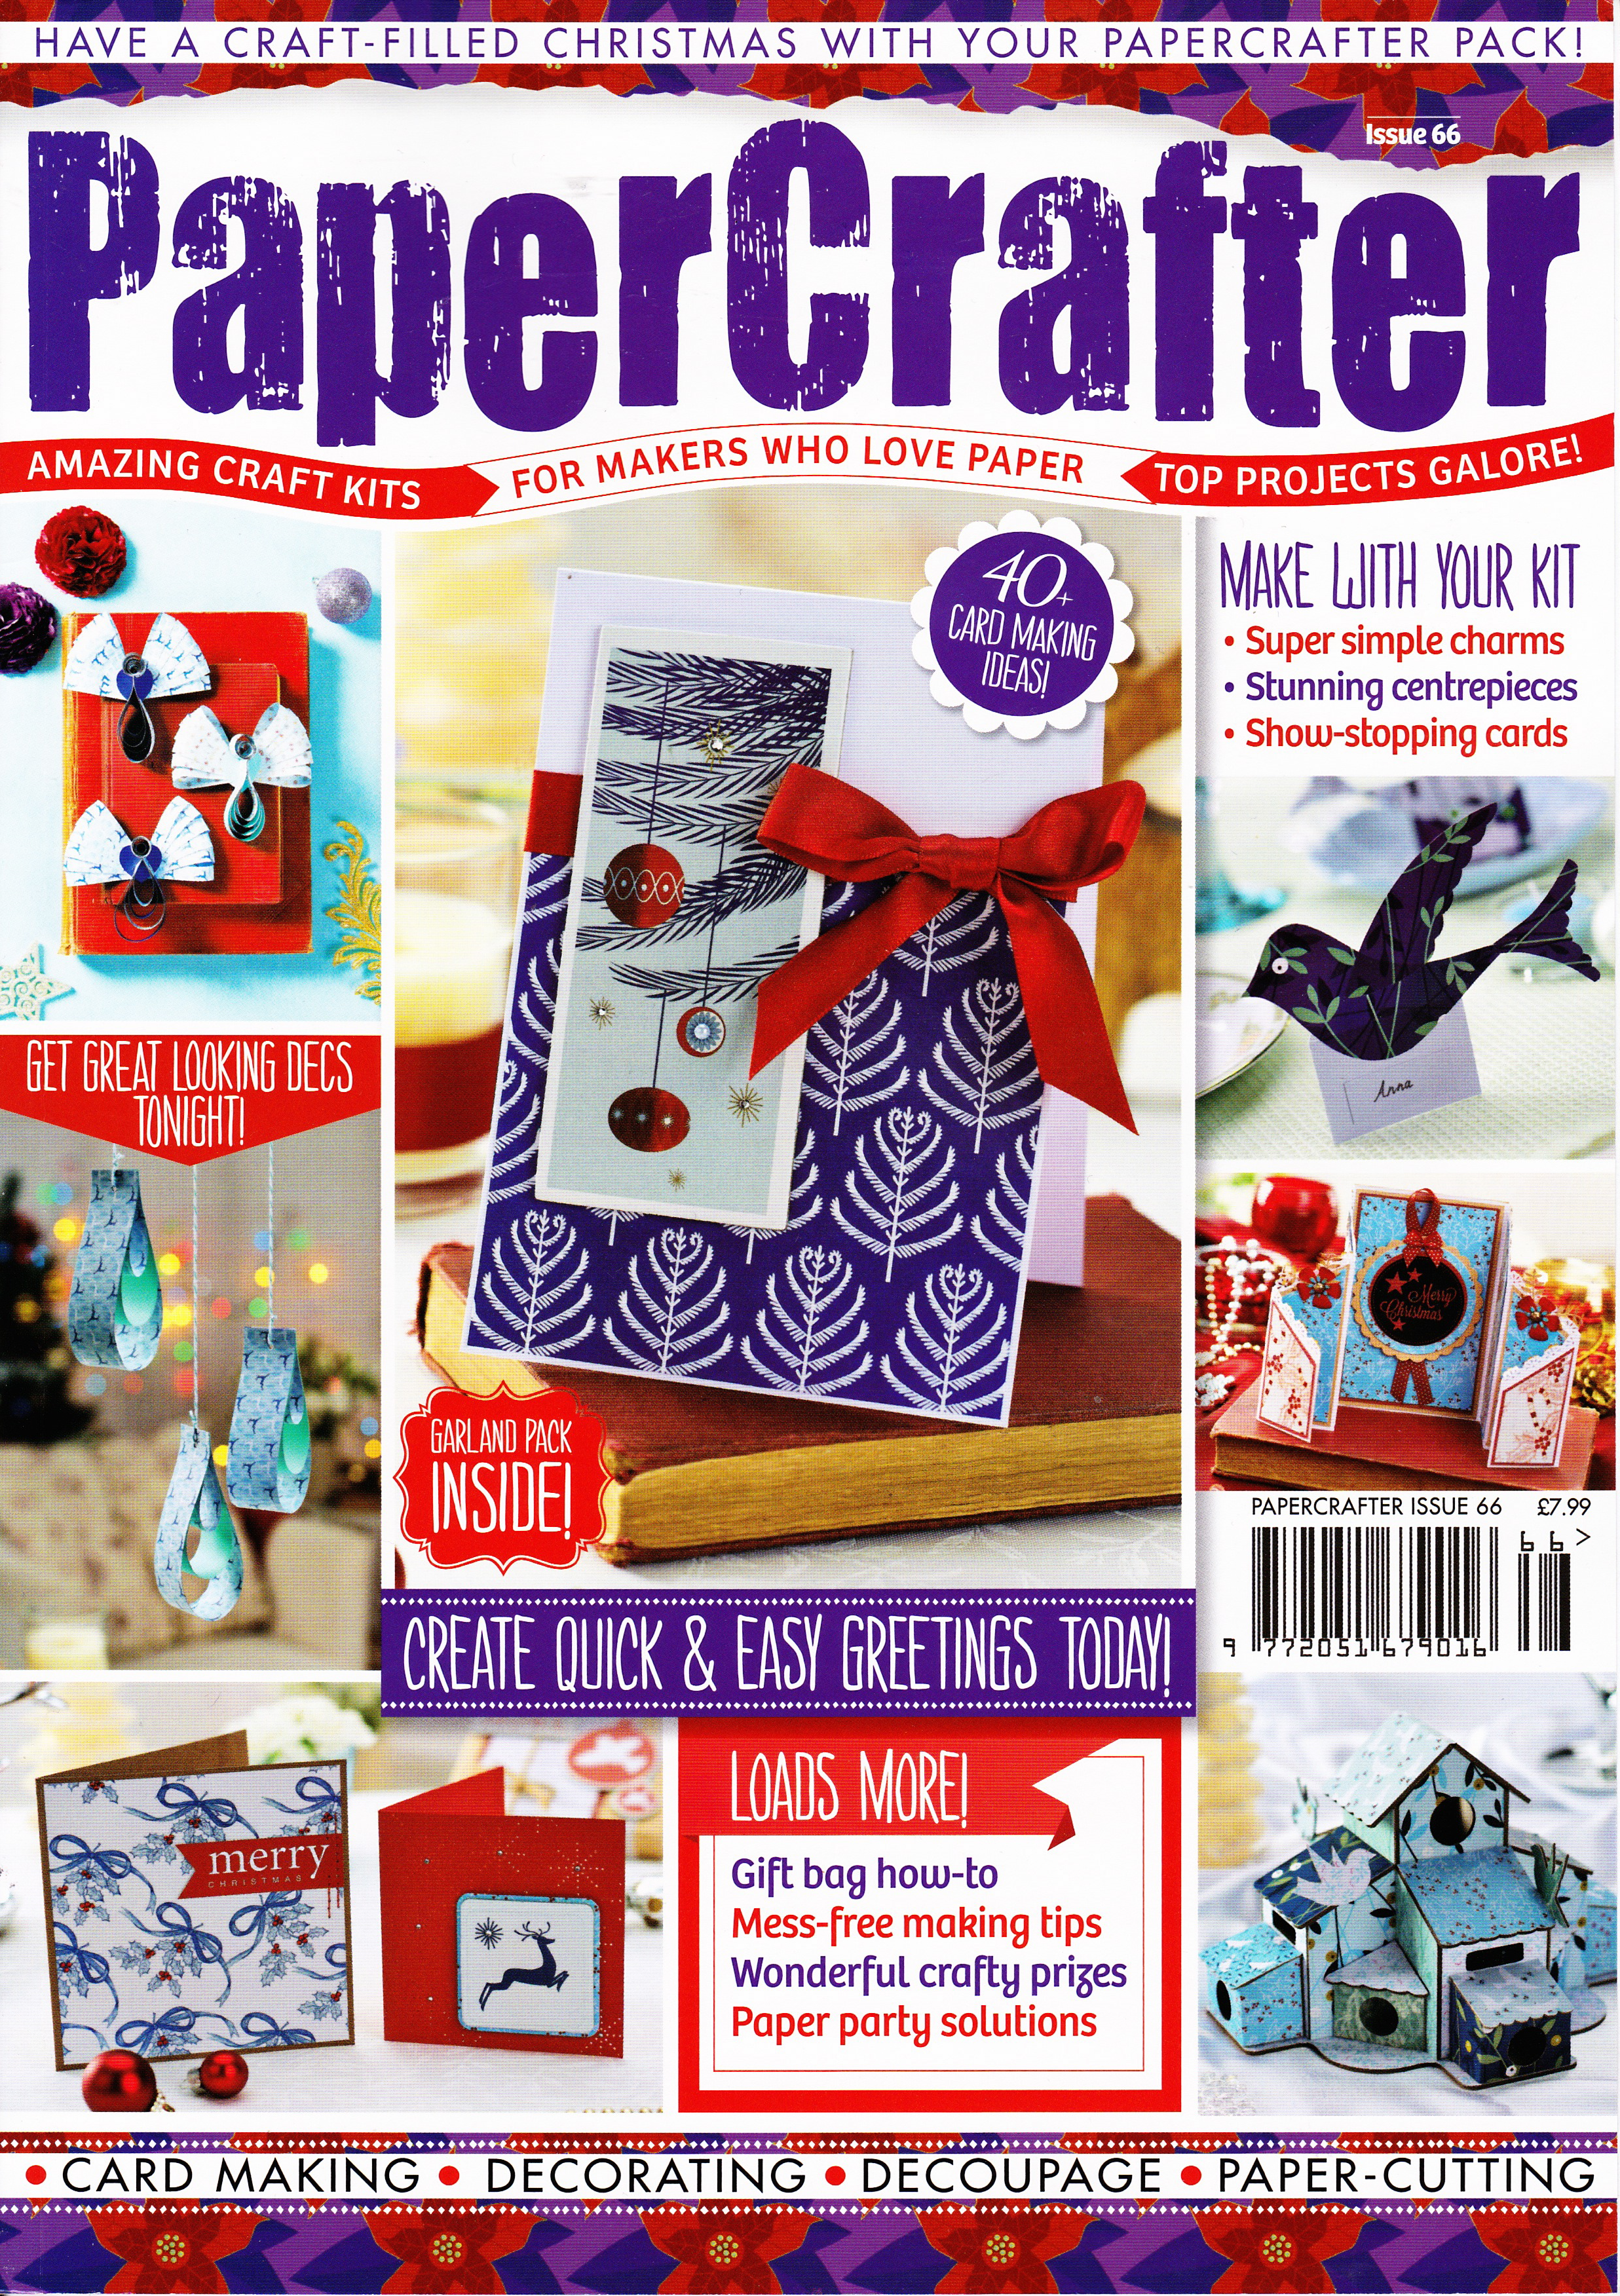 PaperCrafter magazine – Issue 66